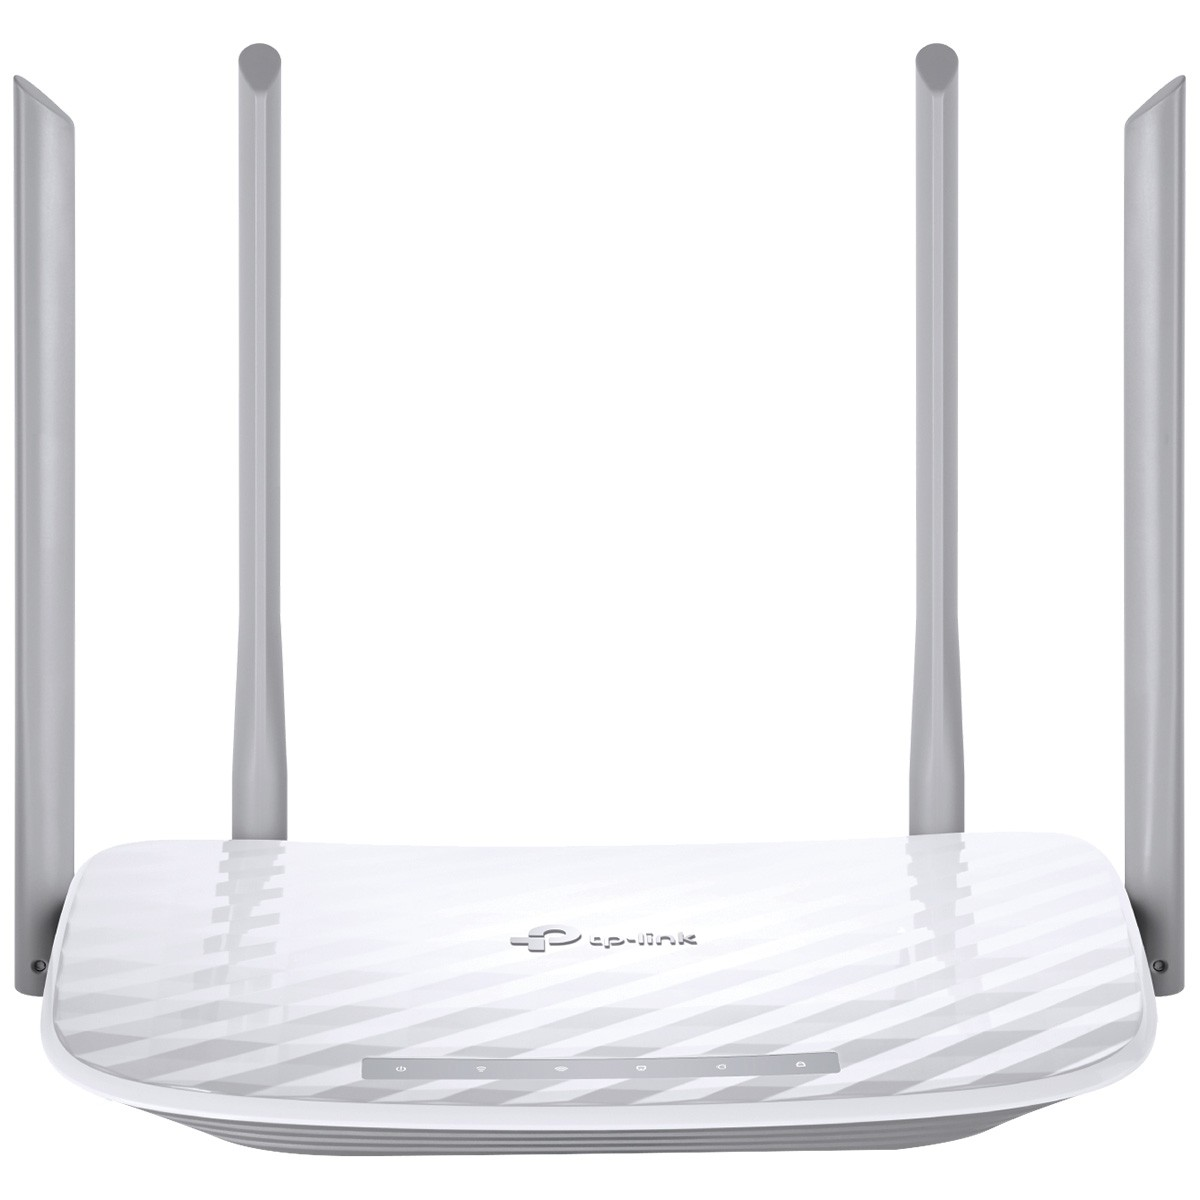 Roteador Wireless Dual BAND 2.4/5GHZ AC1200 ARCHER 4 Antenas C50 V3 com CHECK IN NO Facebook